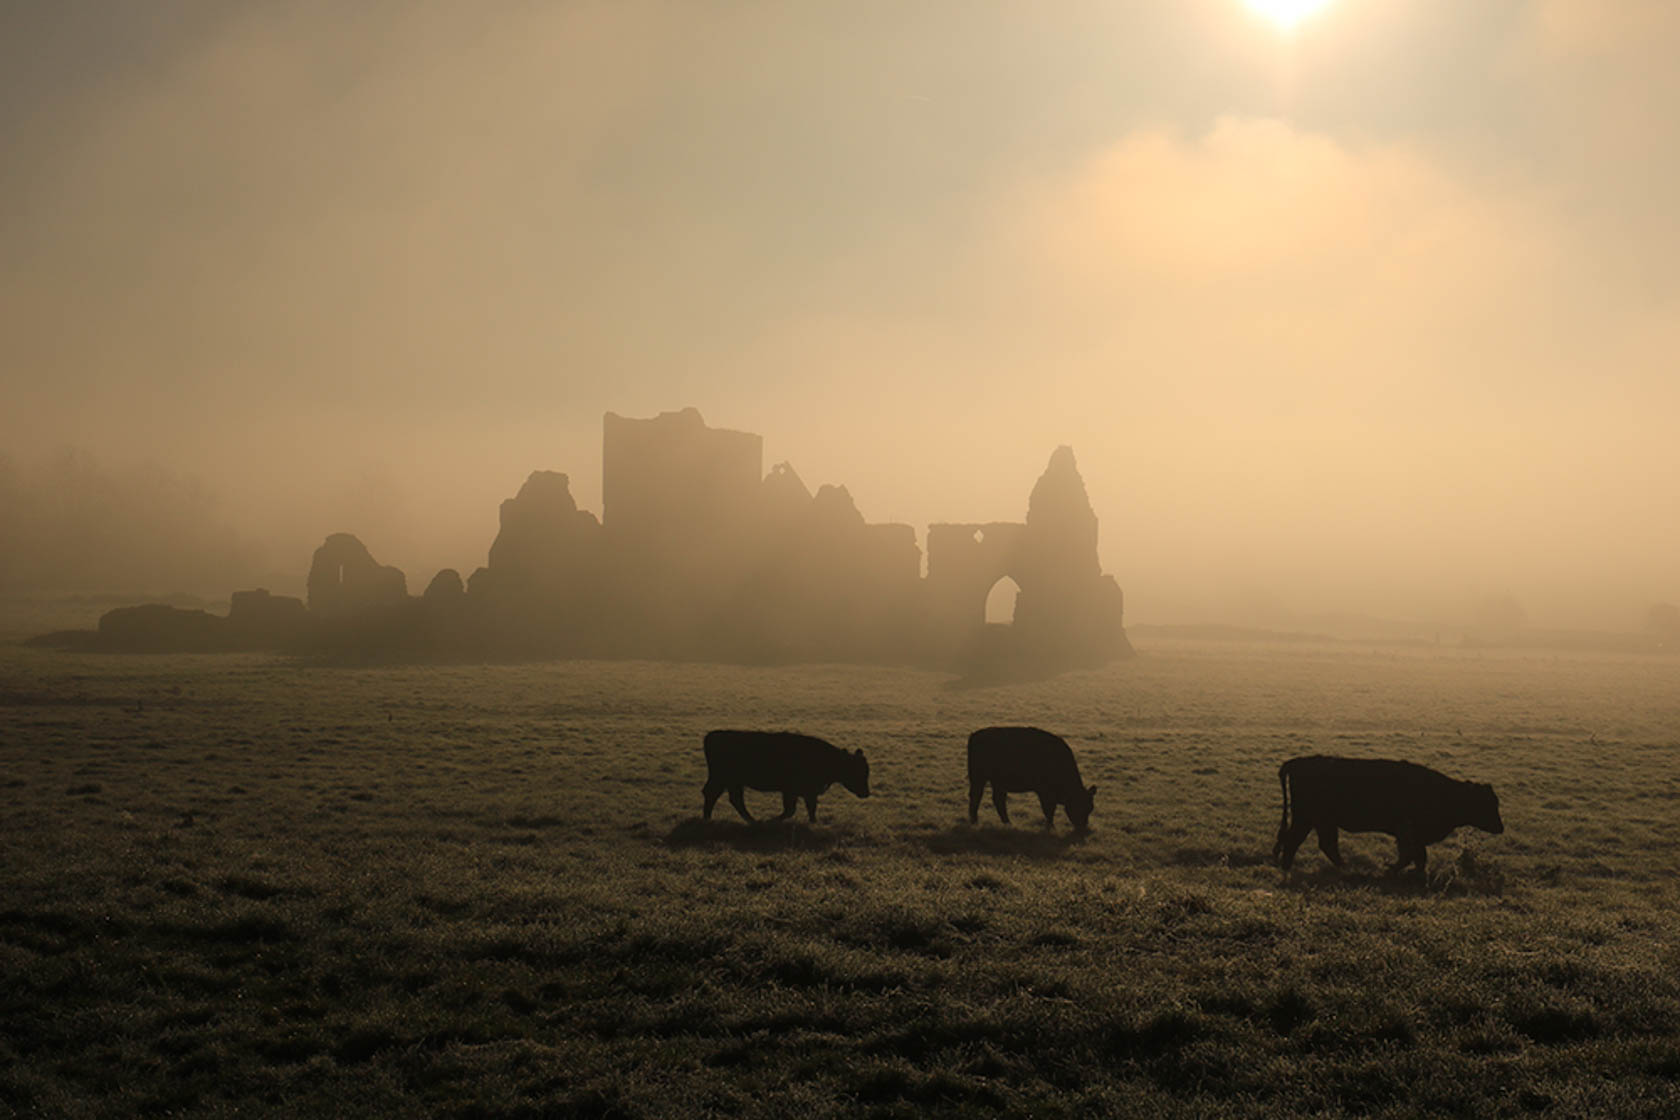 Cows in a field shrouded in mist with ruins in the background taken with the Canon EOS 750D digital SLR camera